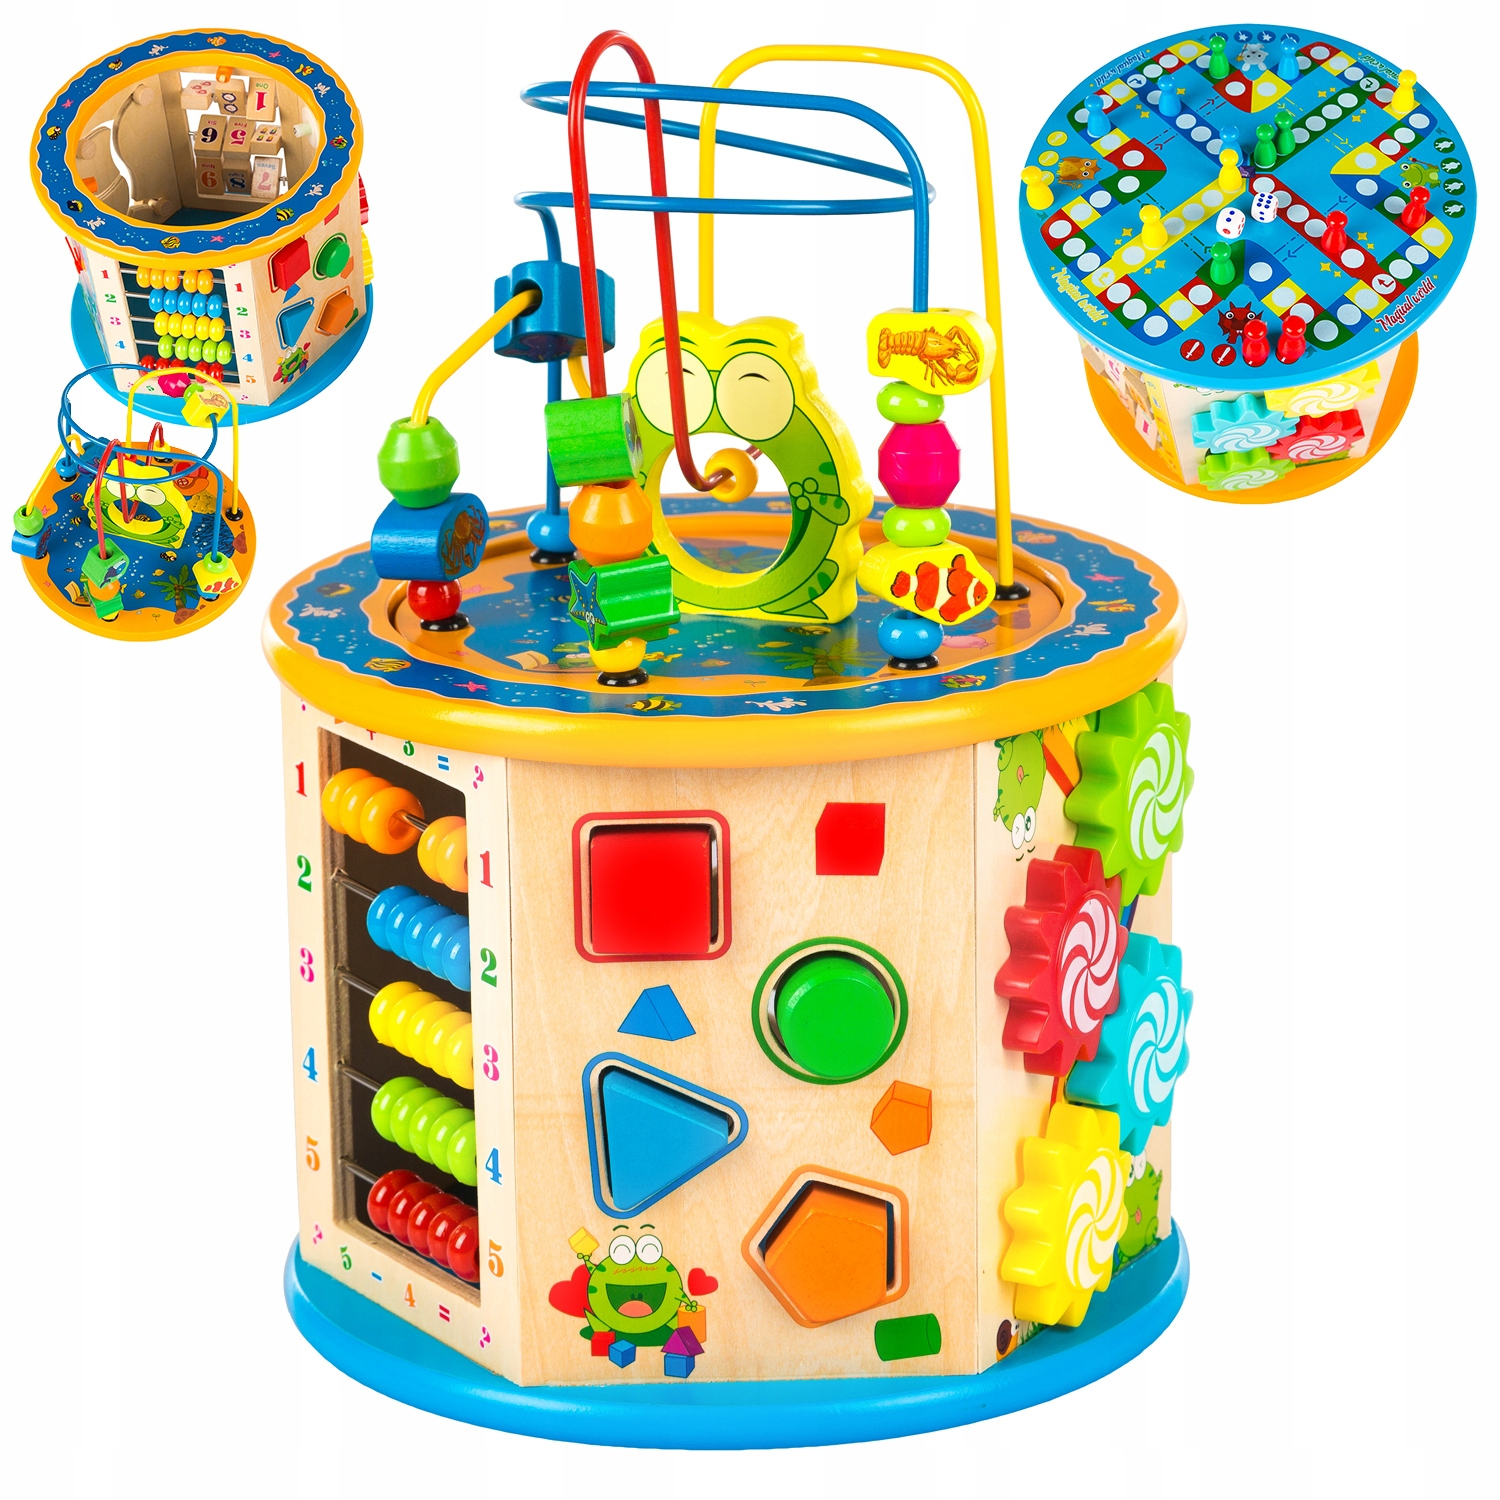 KINDERPLAY WOODEN EDUCATION CUBE 8v1